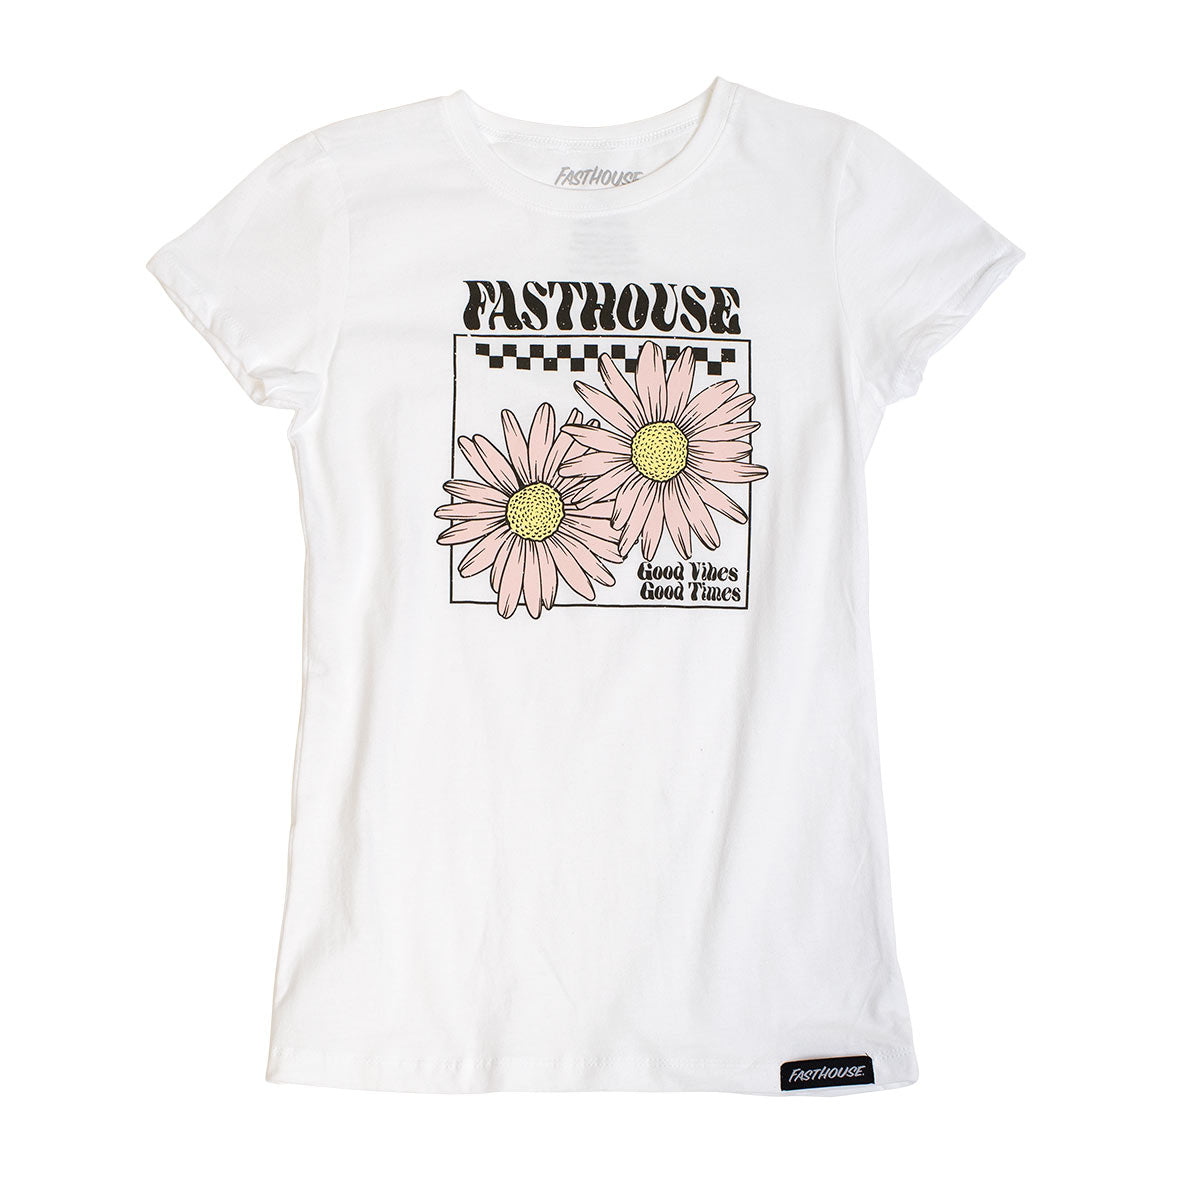 Daydreamer Girl's Tee - White